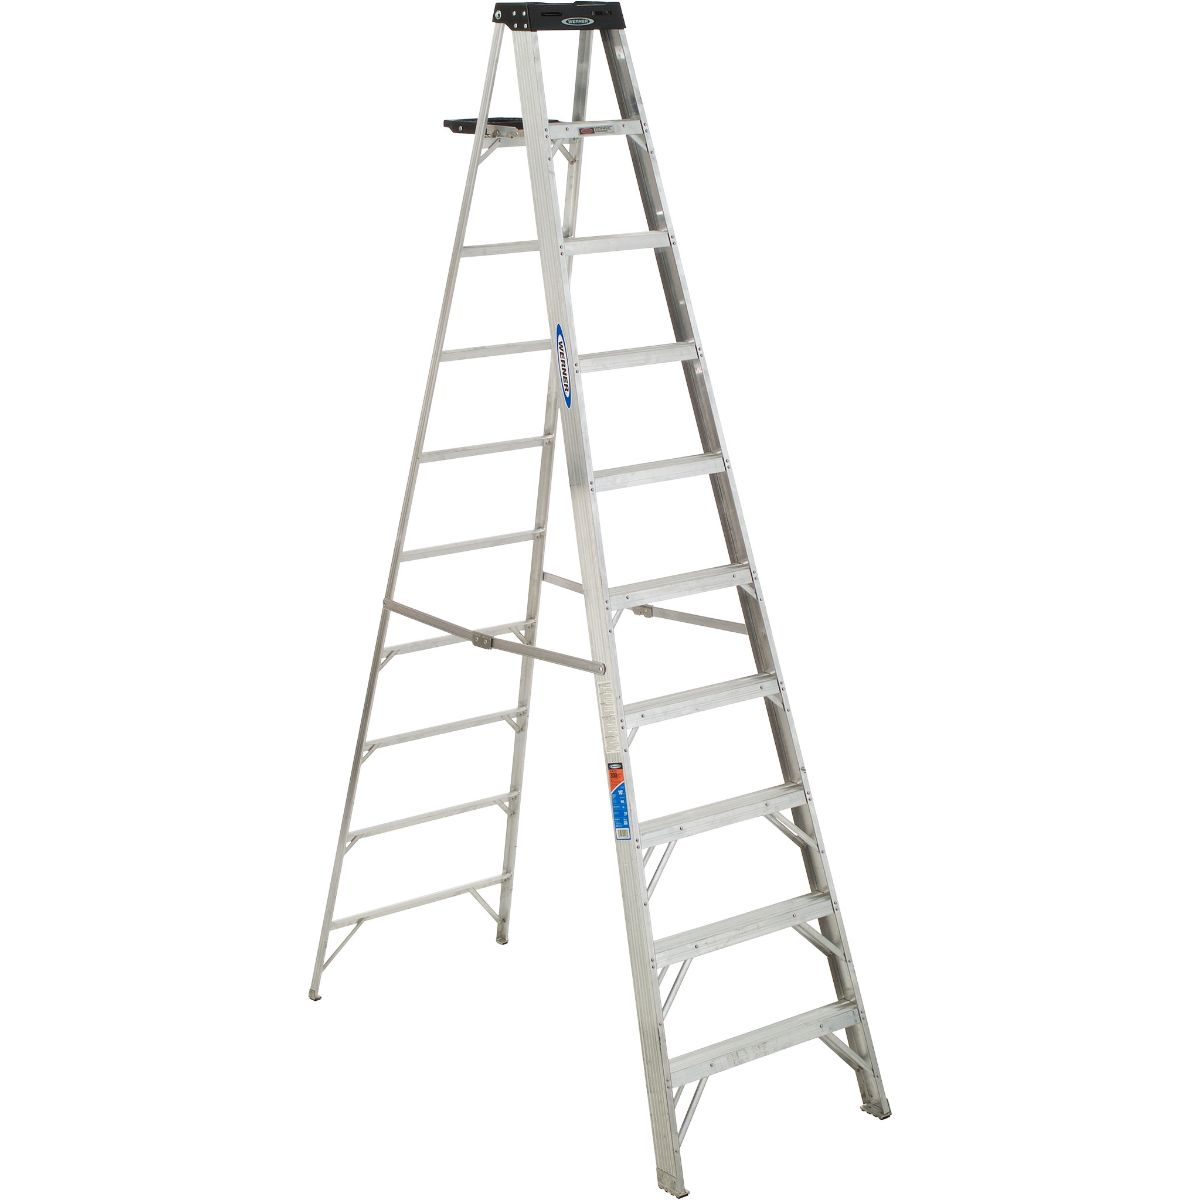 8 Foot A Frame Ladder